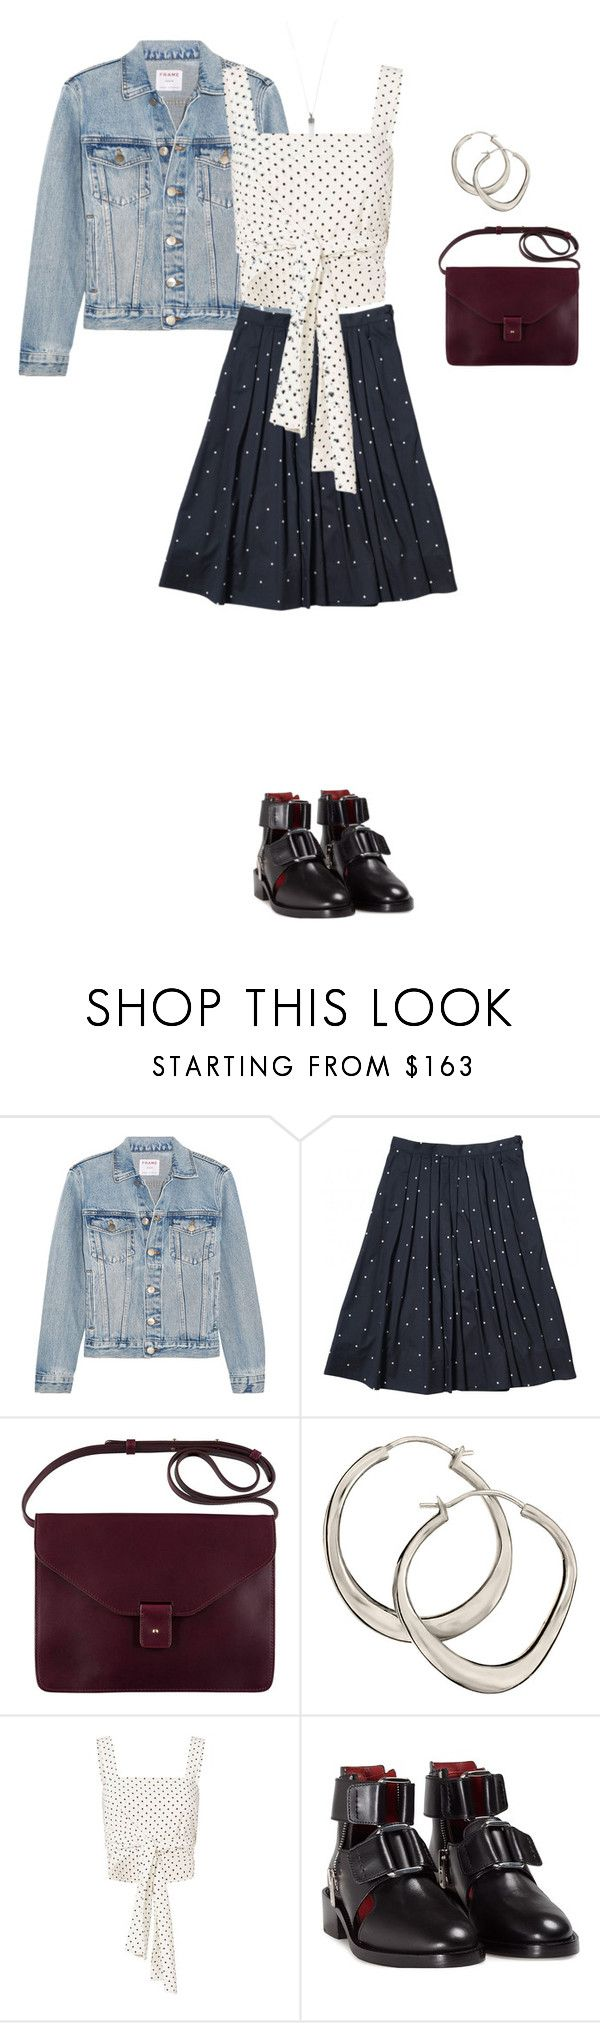 """""""Untitled #193"""" by noirbeige ❤ liked on Polyvore featuring Frame, A.P.C., Dinny Hall, Alexis, 3.1 Phillip Lim and Marc Jacobs"""